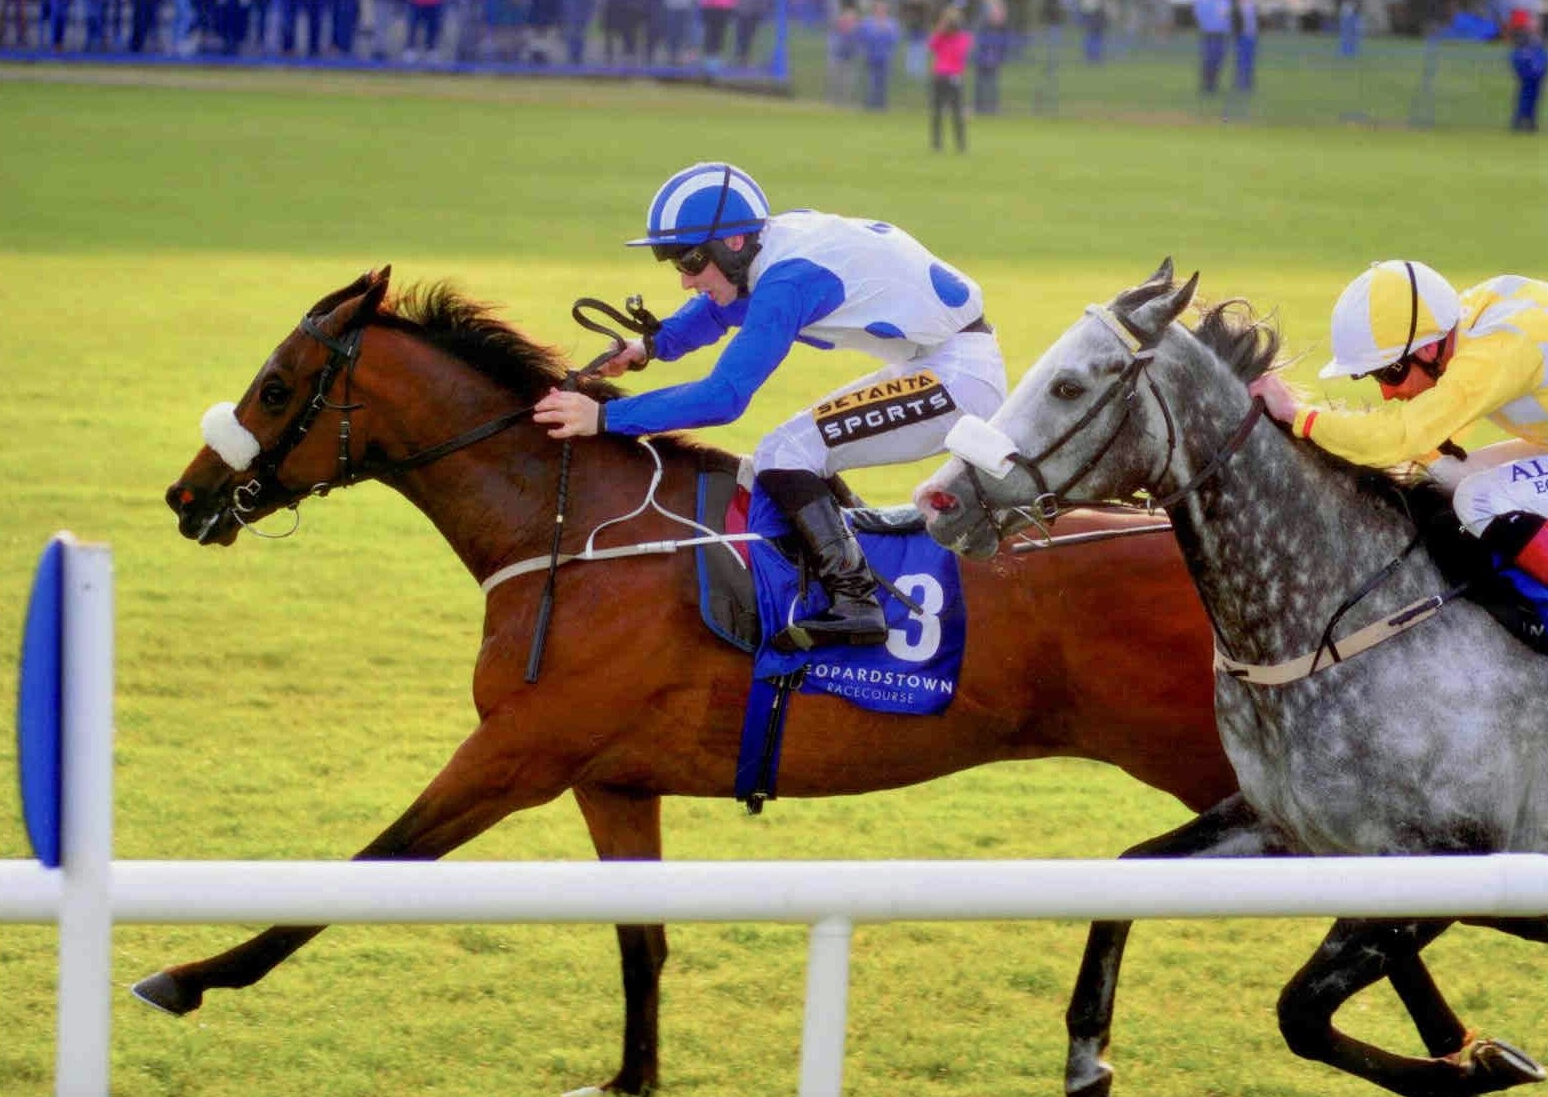 TENNESSEE WILDCAT wins the Glencairn St (Listed) at Leopardstown on June 11th 2015